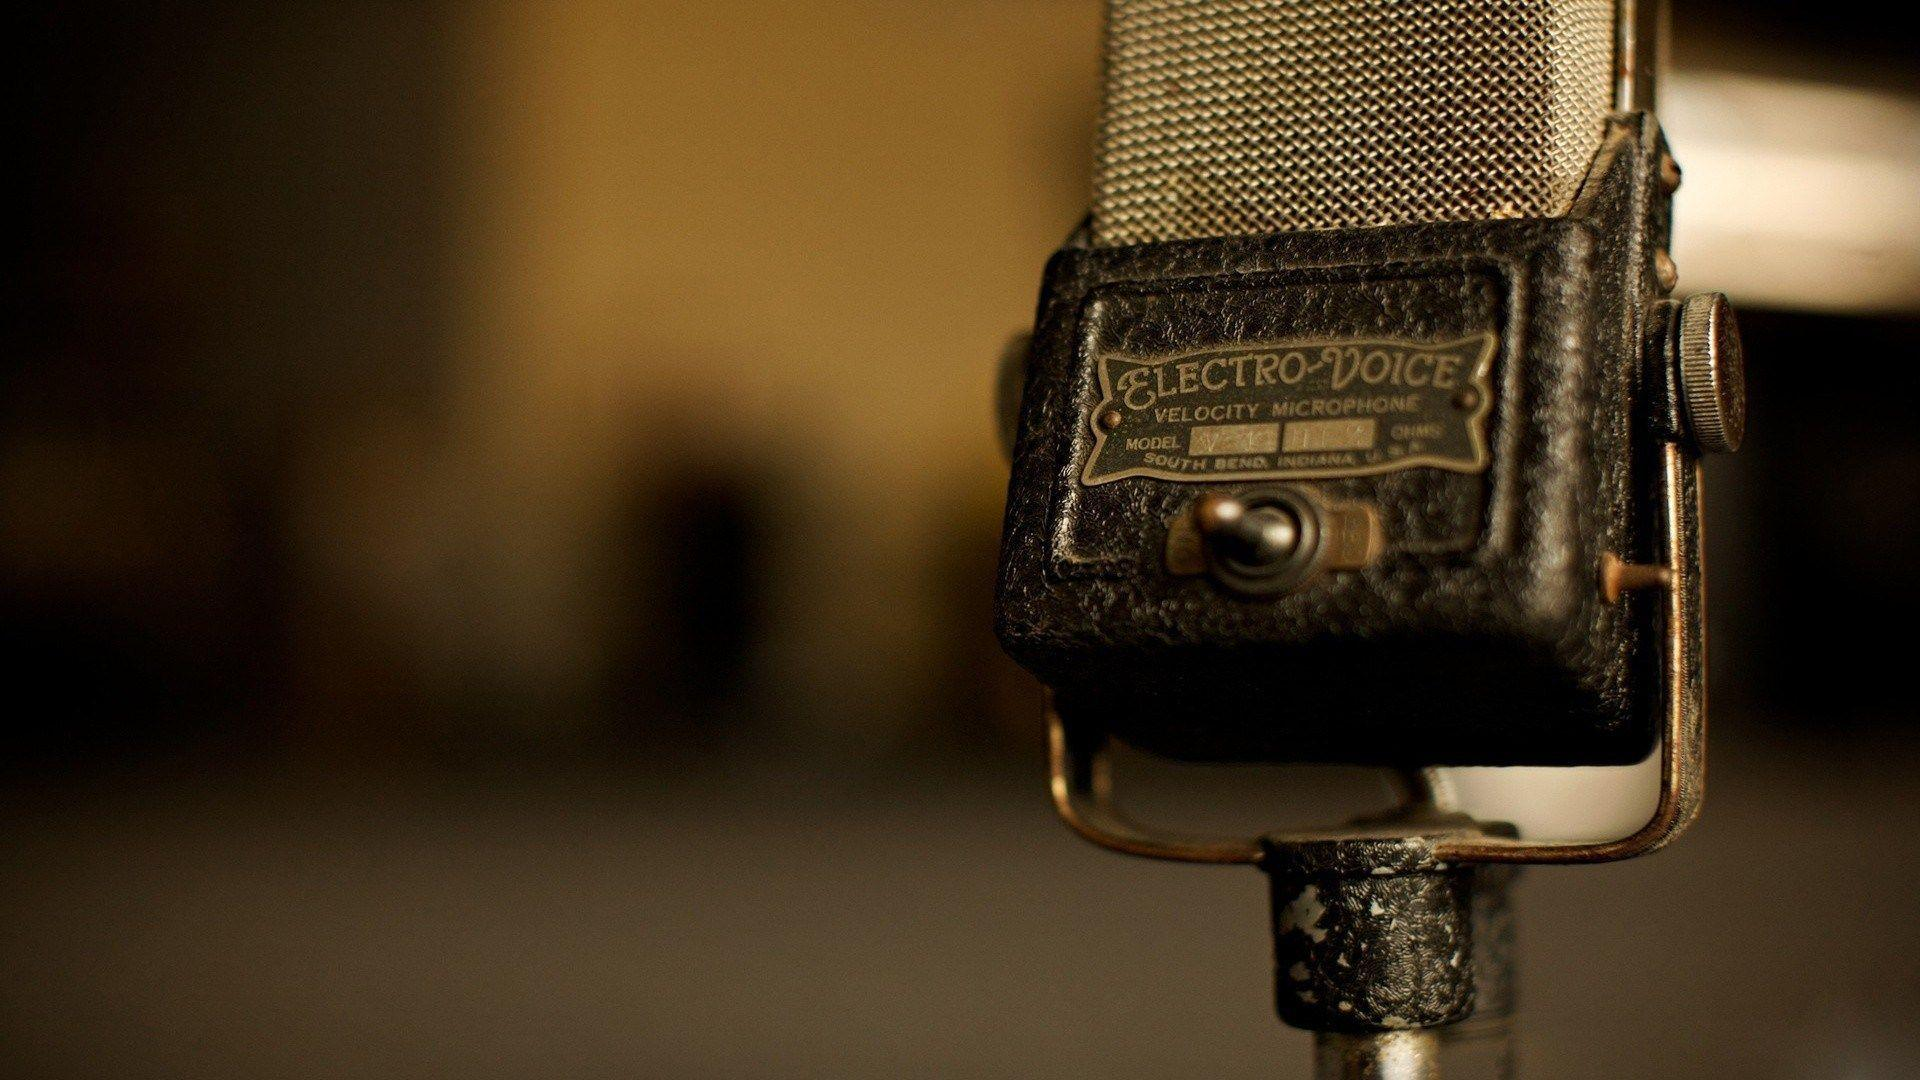 Microphone Vintage Old Music HD Wallpapers Desktop Backgrounds Free